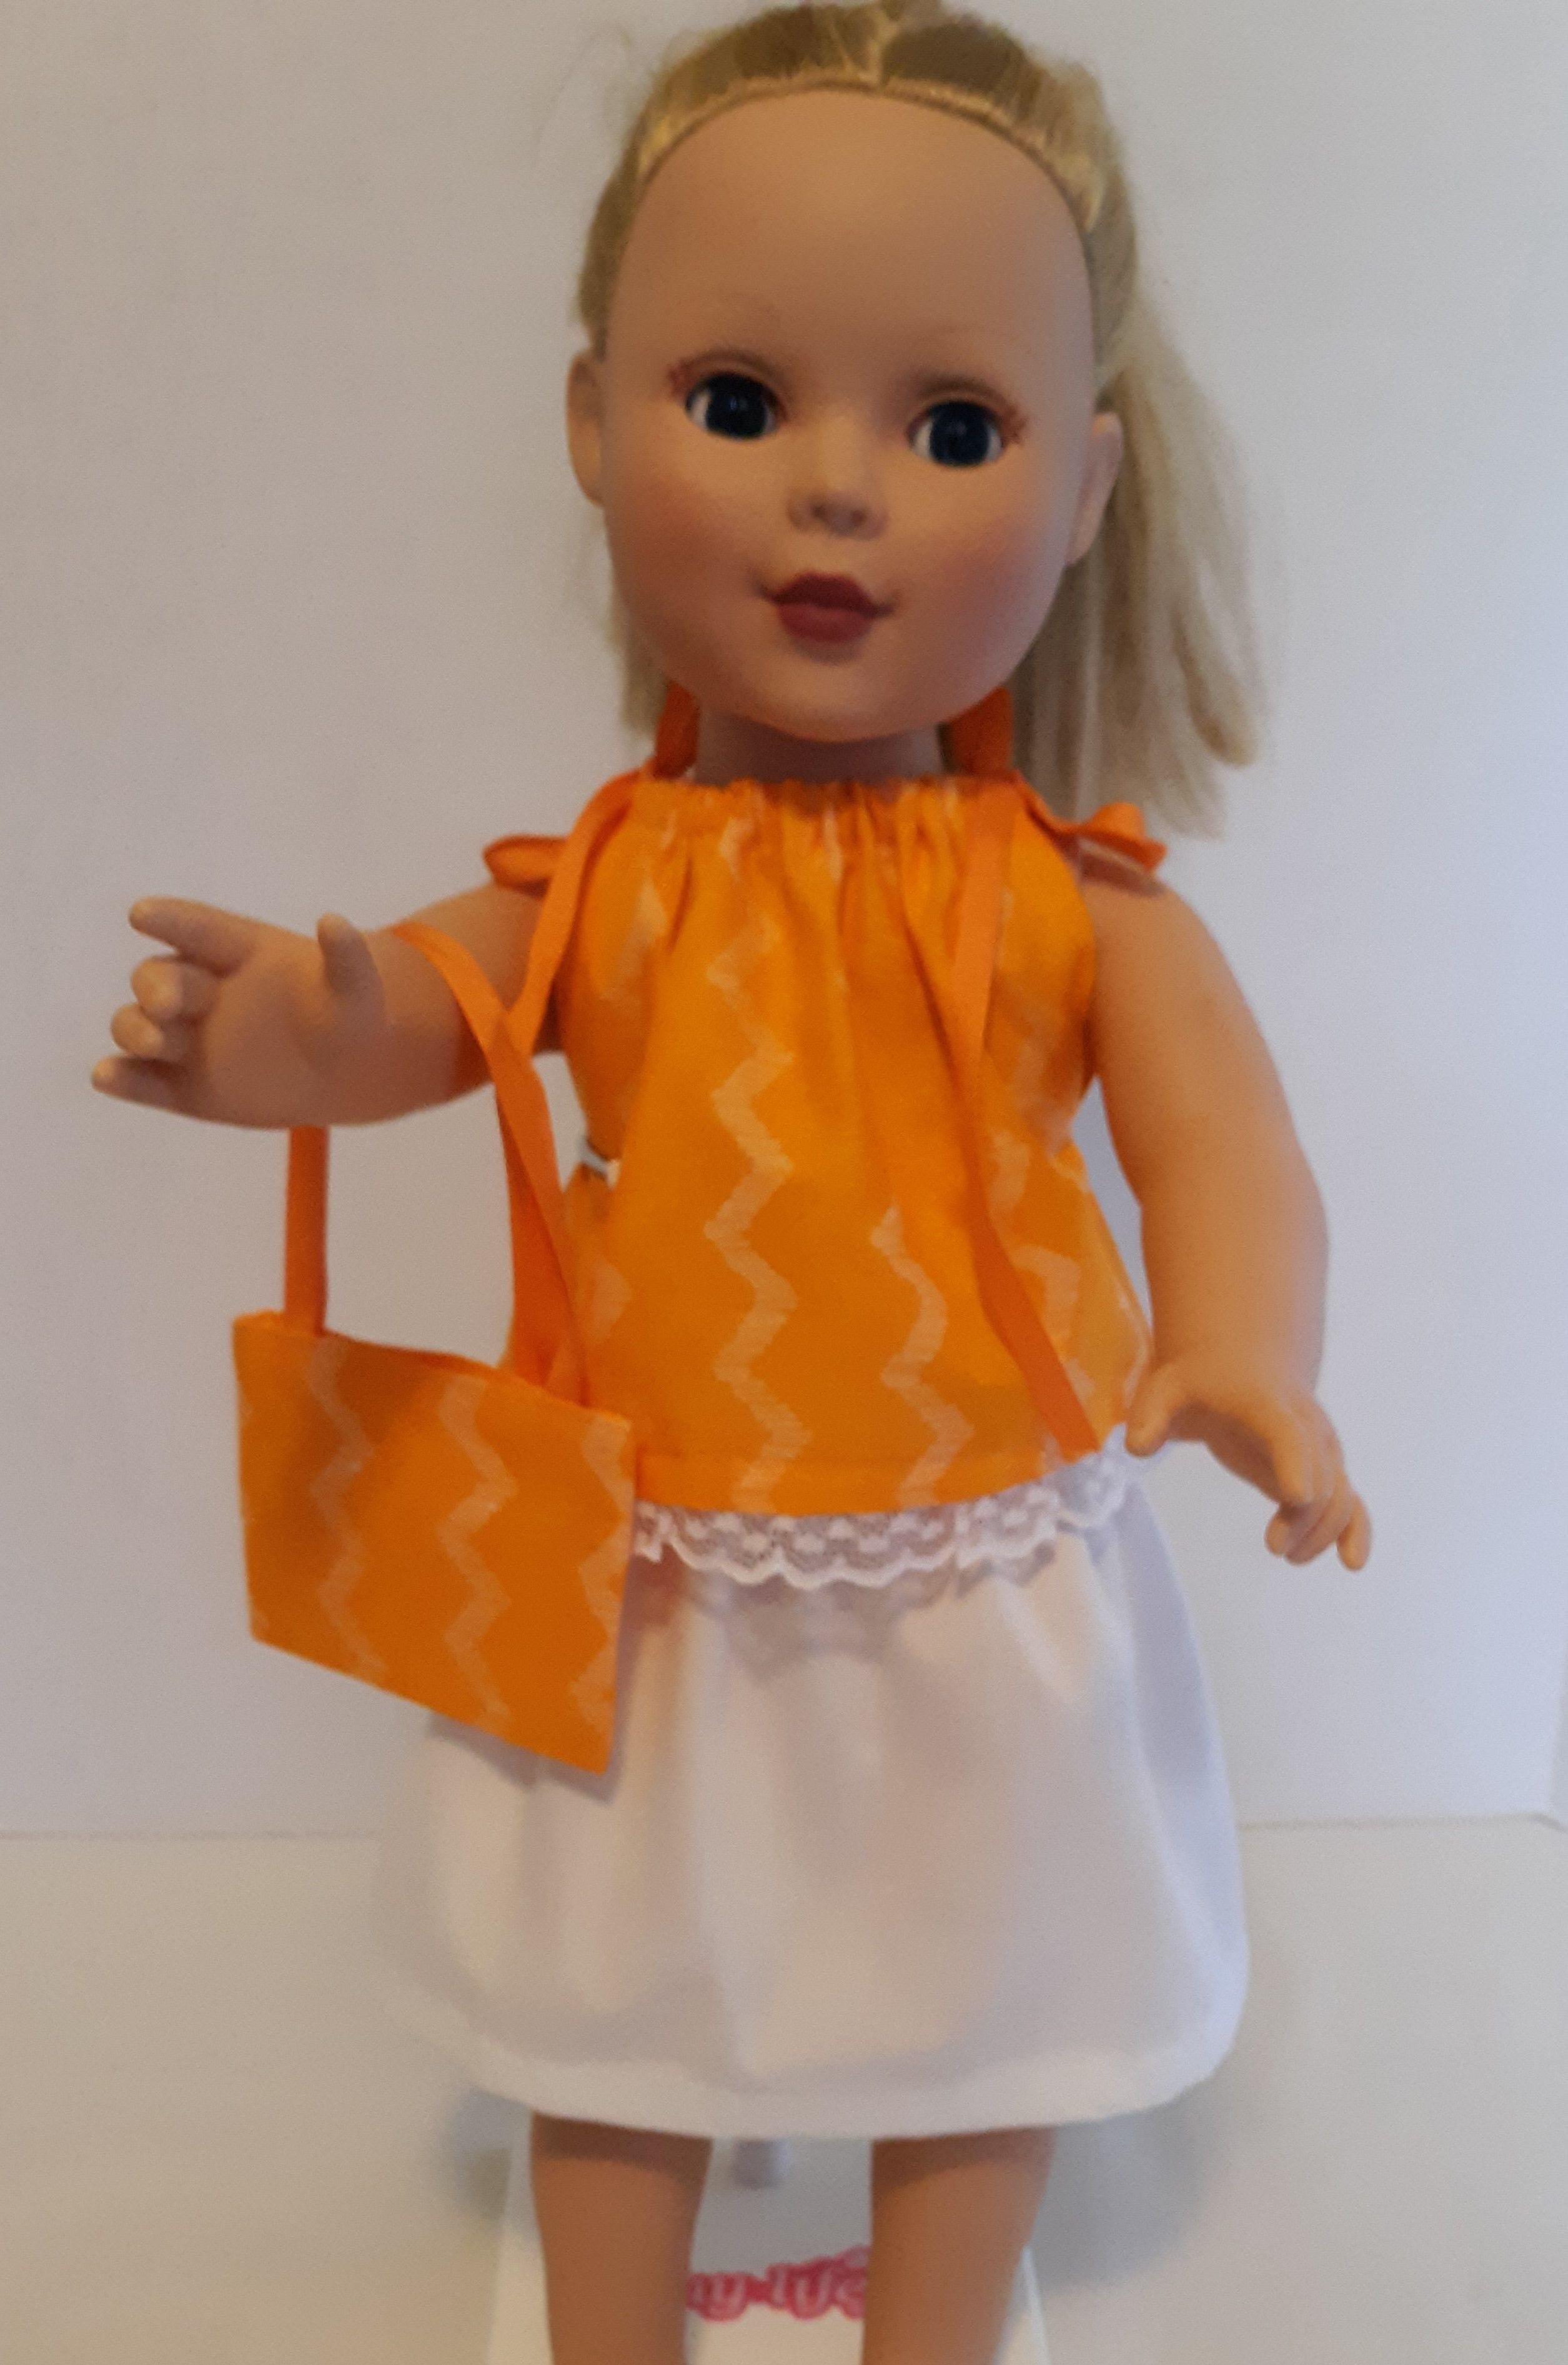 New Doll Clothes Dress for 18inch American Girl Our Generation My Life Dolls